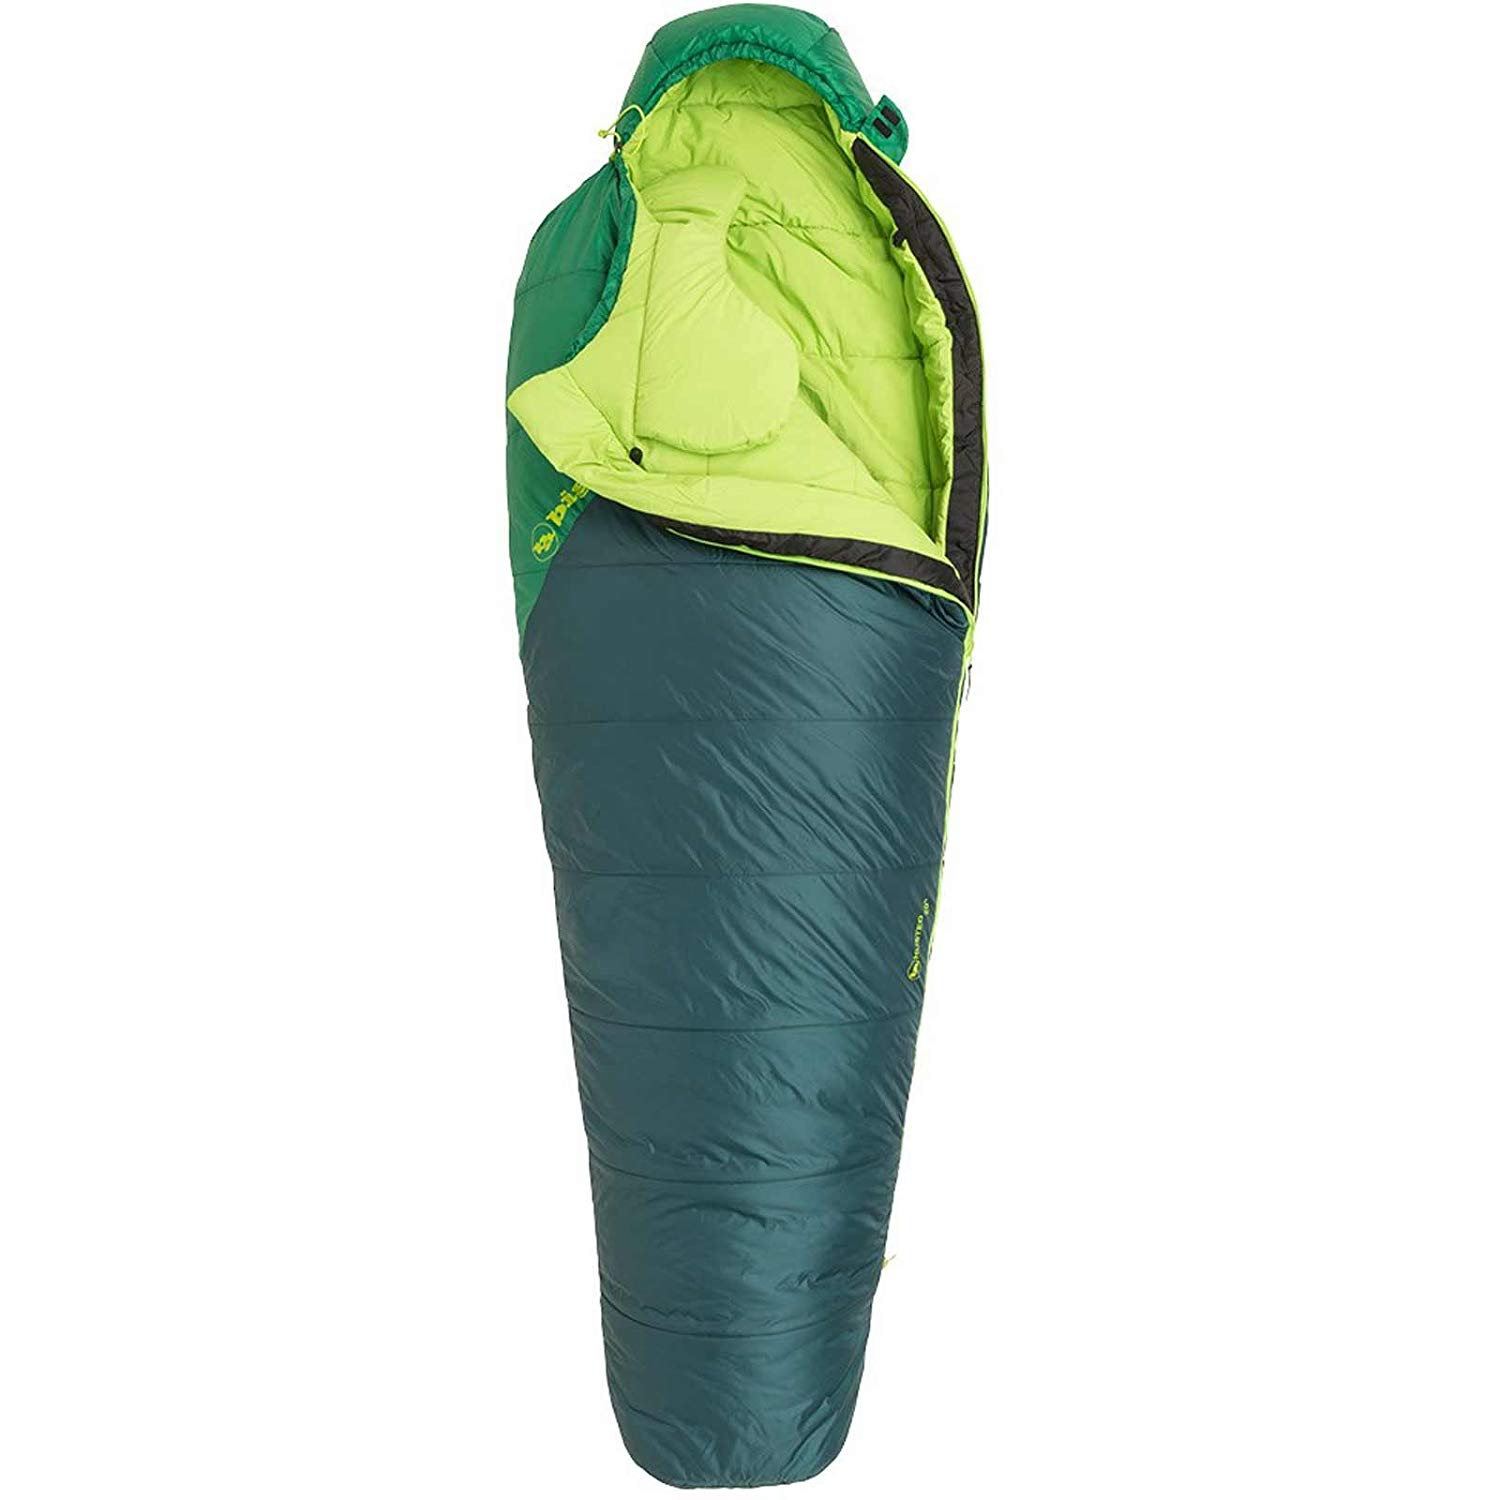 An image of Big Agnes Husted Men's 20 Degree Single Lightweight Polyester 6 Ft. 6 in. Mummy Sleeping Bag | Expert Camper